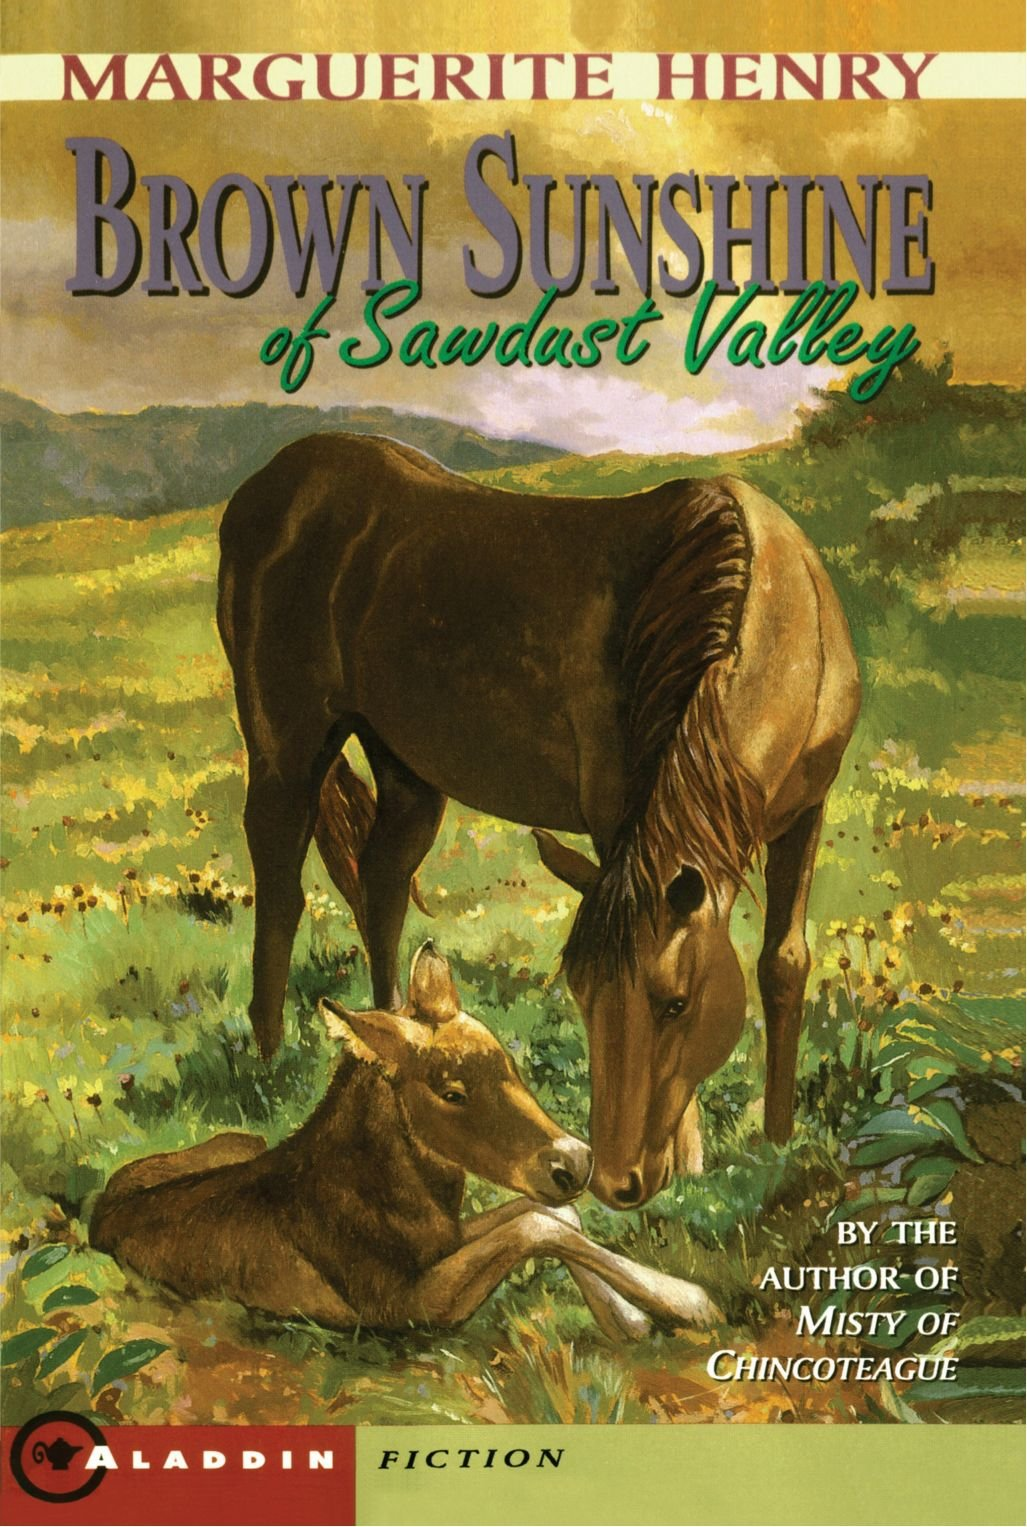 Ebook Brown Sunshine Of Sawdust Valley By Marguerite Henry